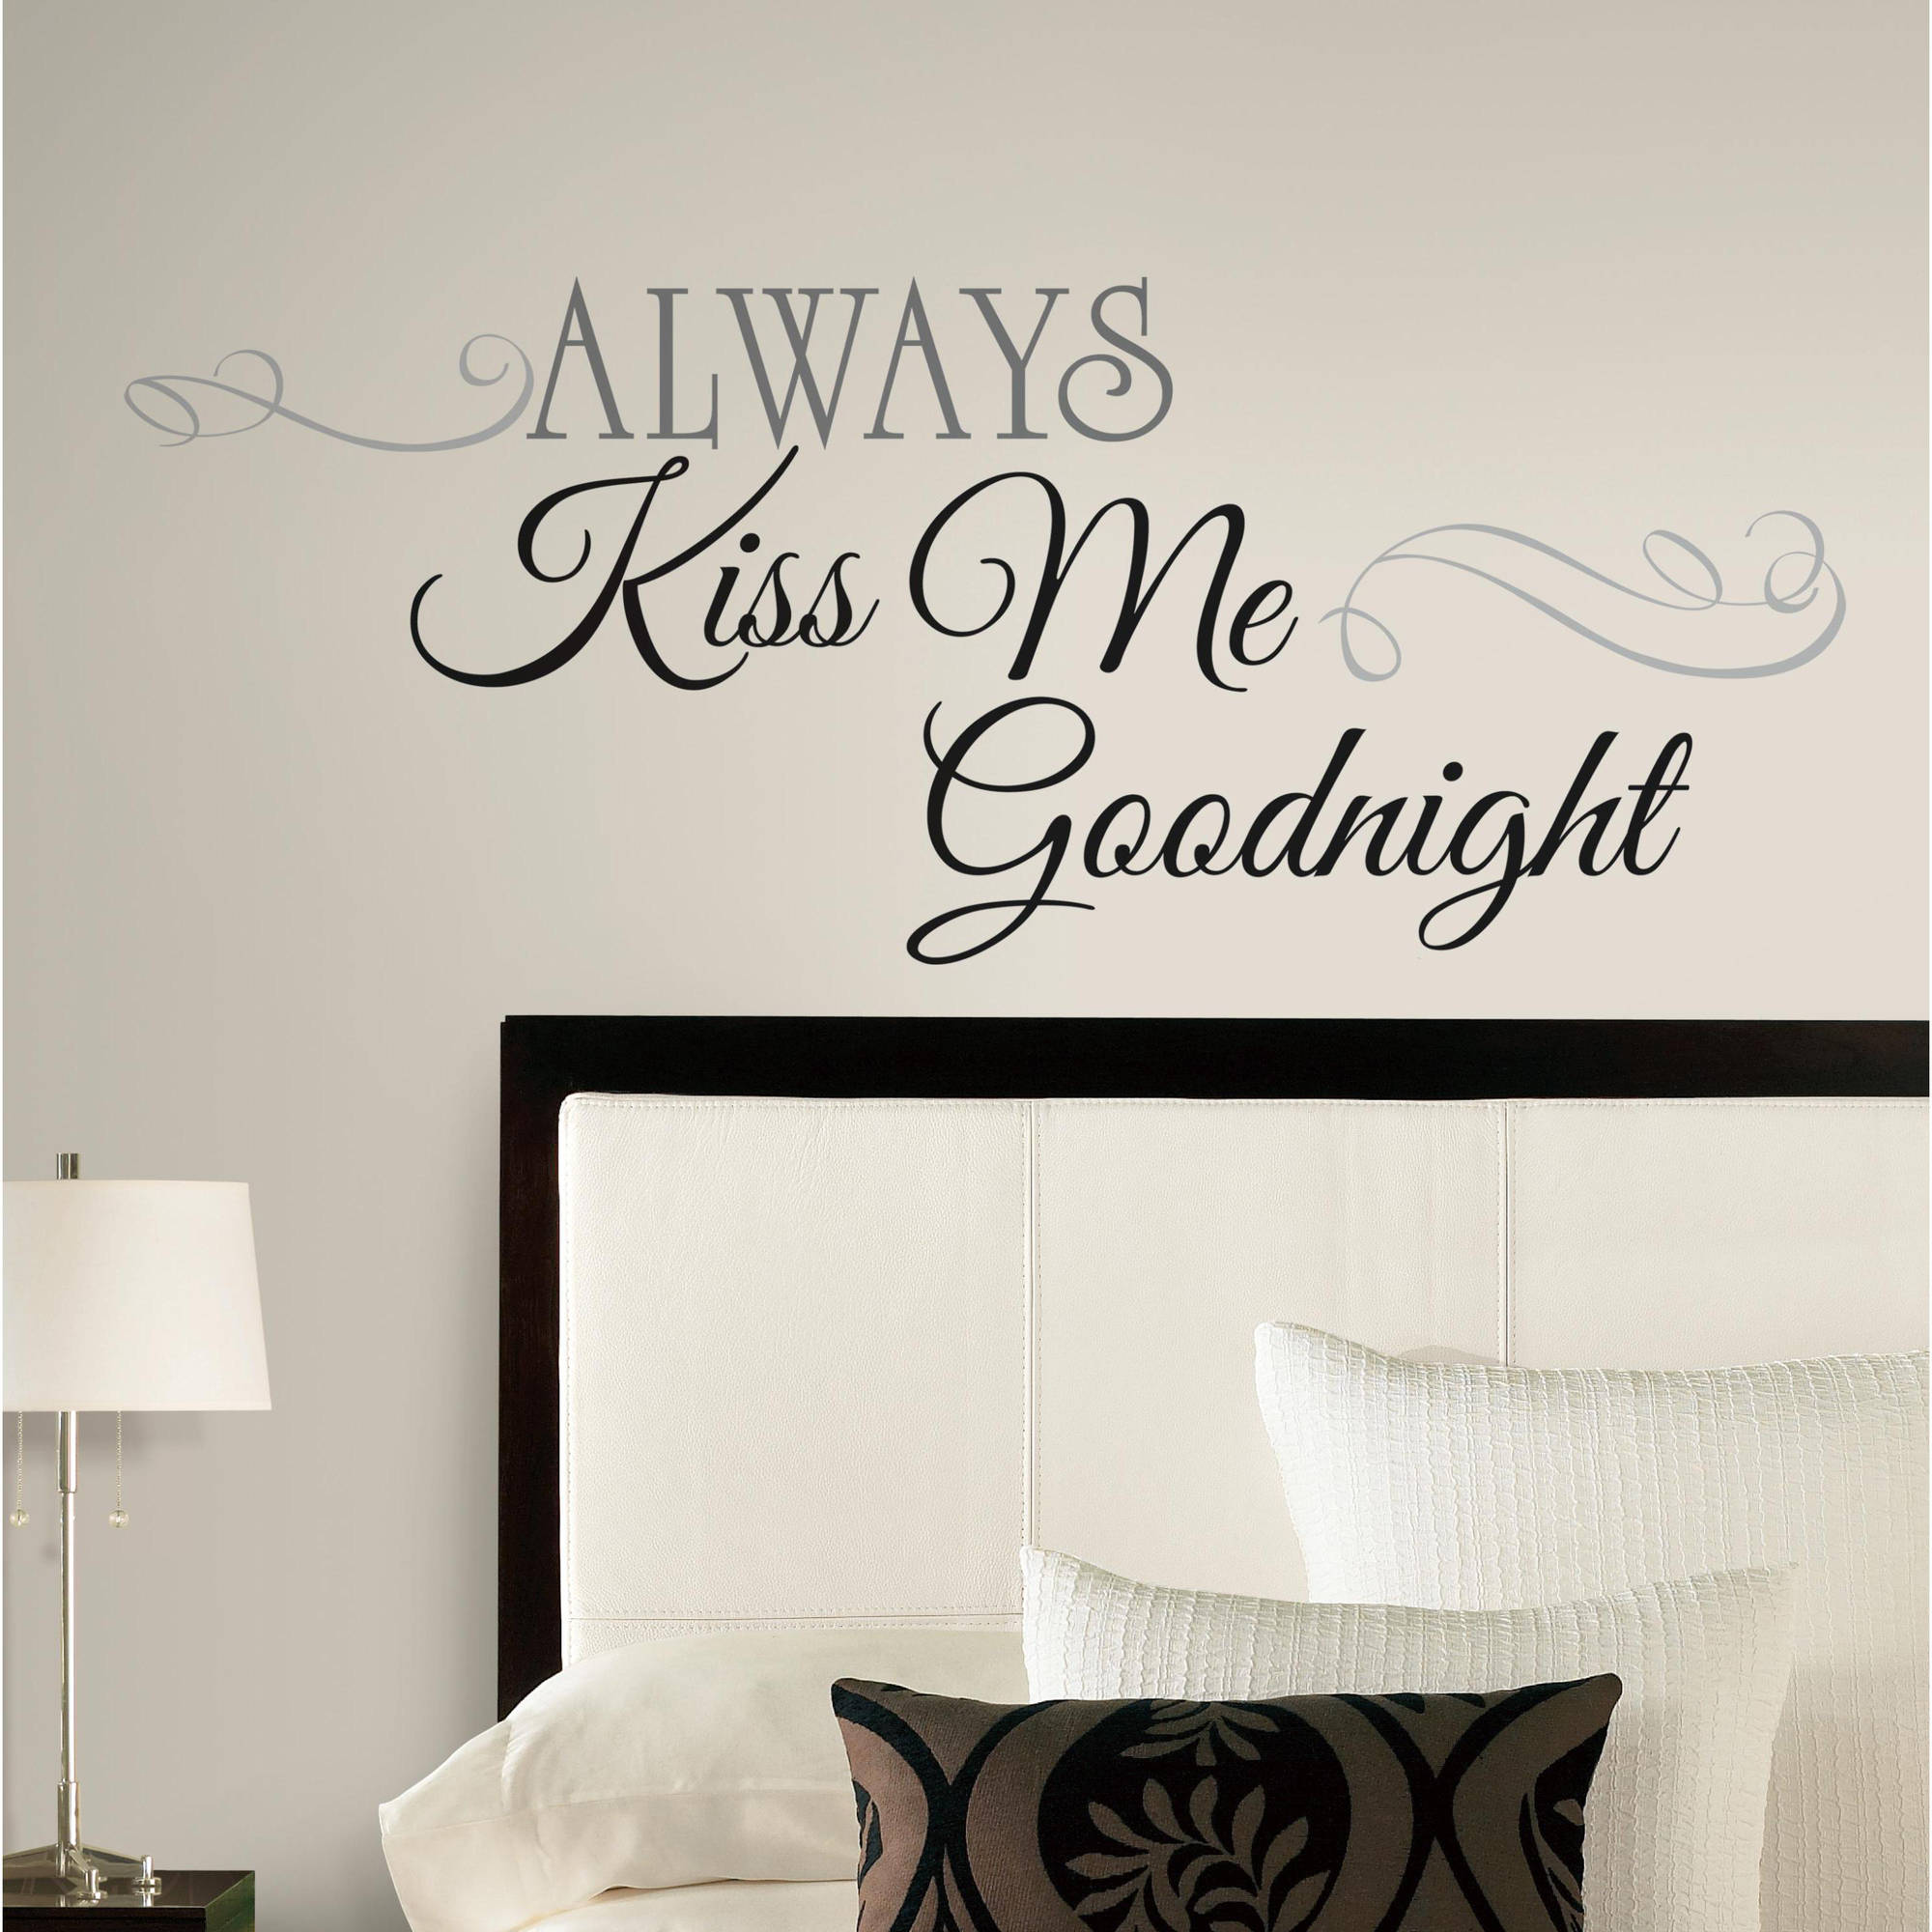 Always Kiss Me Goodnight Peel & Stick Wall Decals - Walmart.com